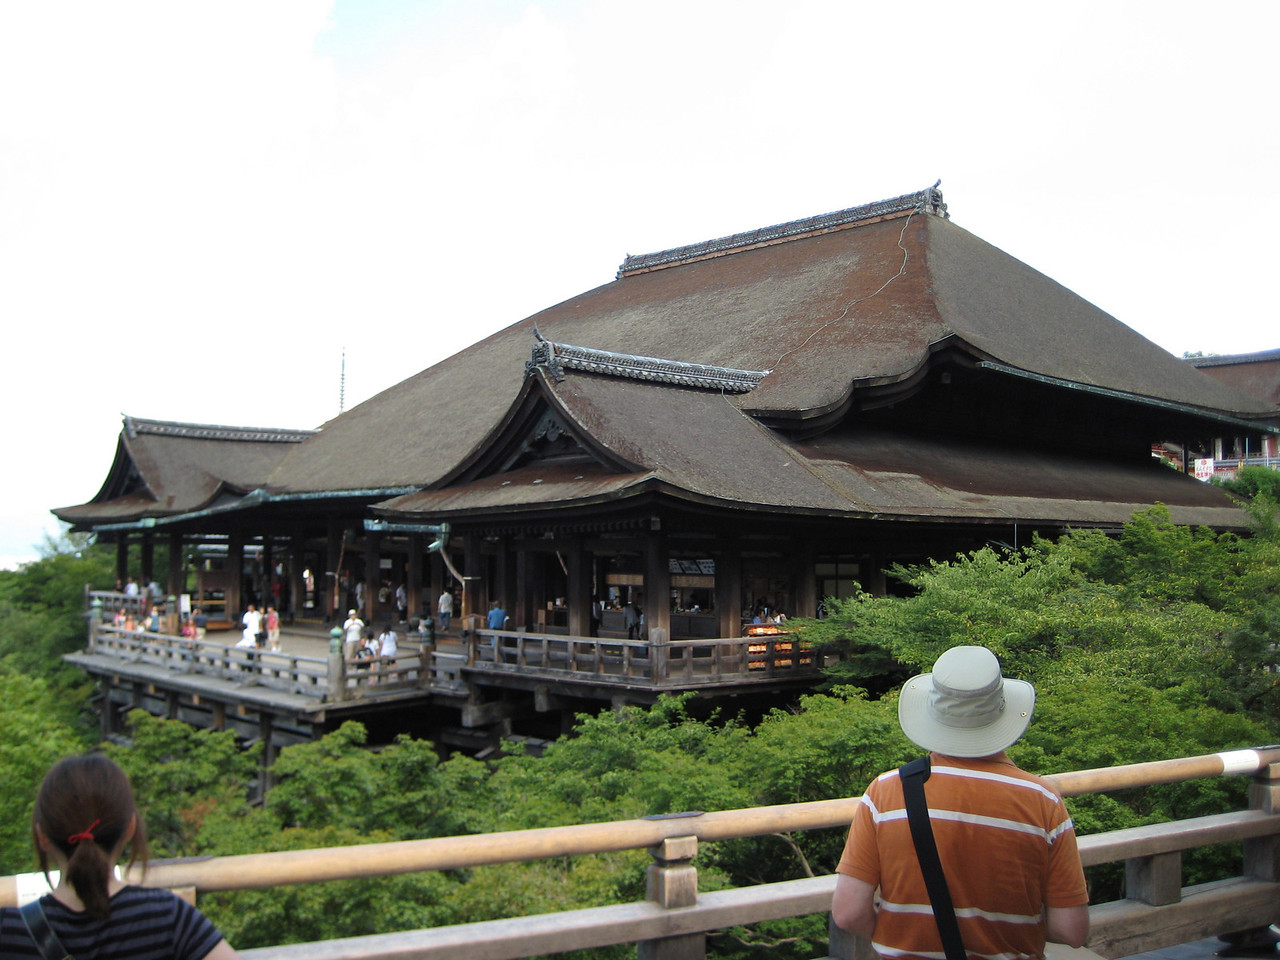 Another panoramic view of the Kiyomizu-Dera main hall with me (John) in the foreground